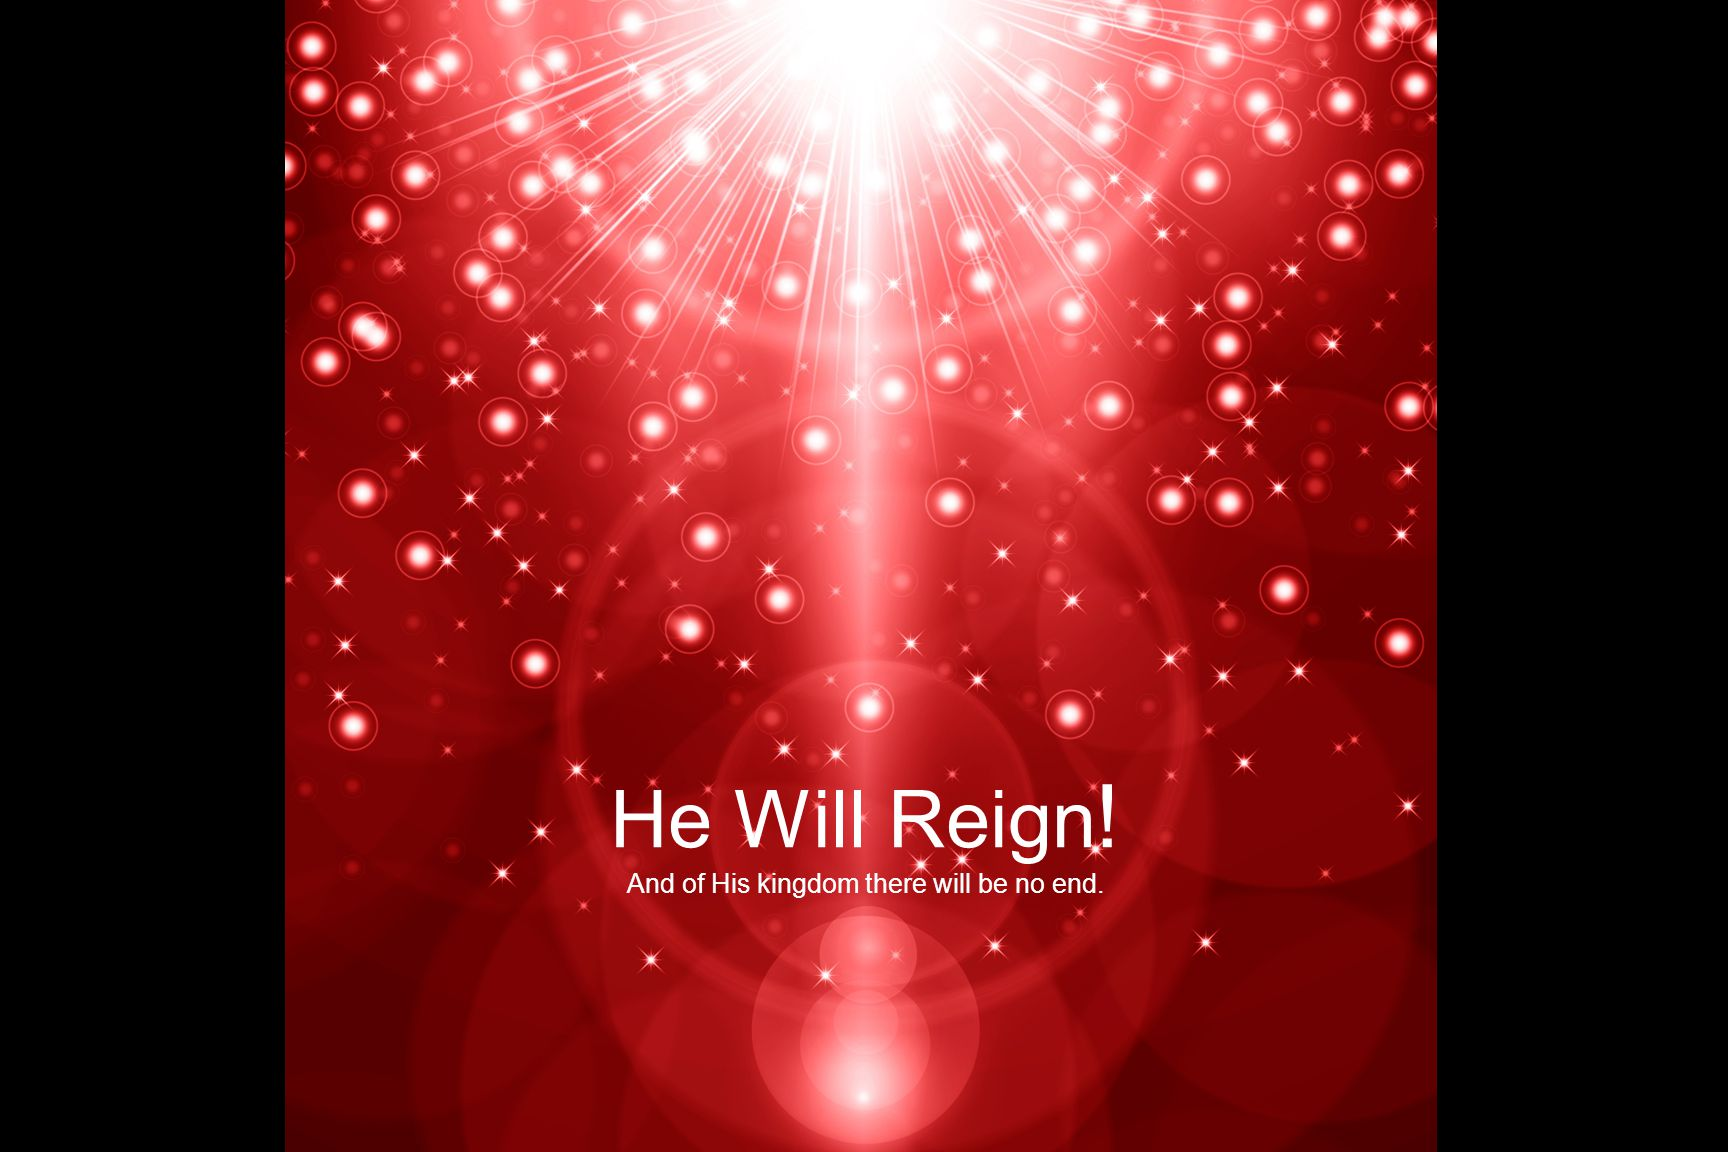 He Will Reign ! And of His kingdom there will be no end.